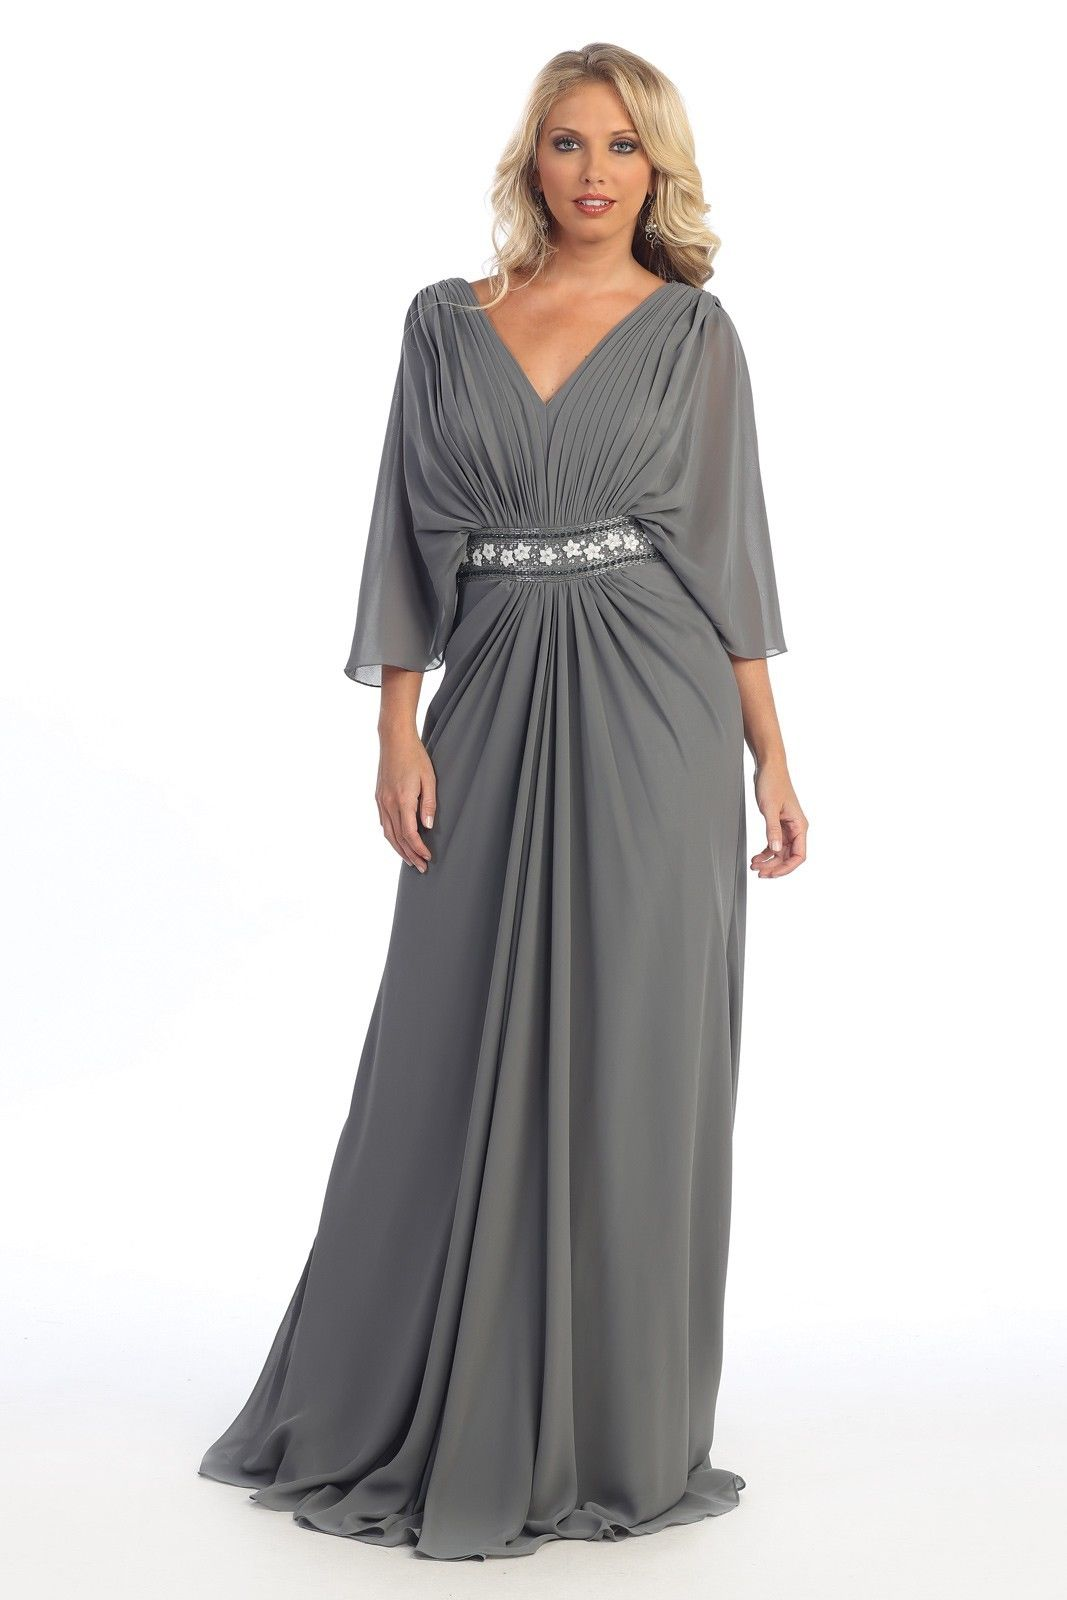 Plus Size Gown Dresses Style Jeans